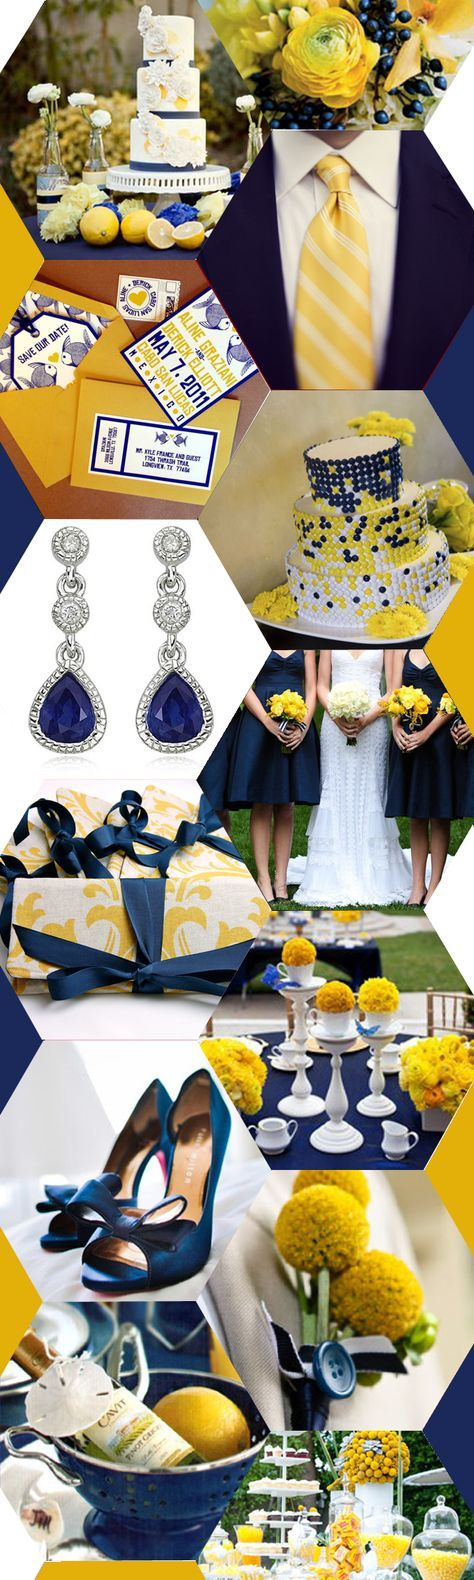 navy blue + yellow wedding inspiration. That M n m wedding cake is slightly ratchet though lol!